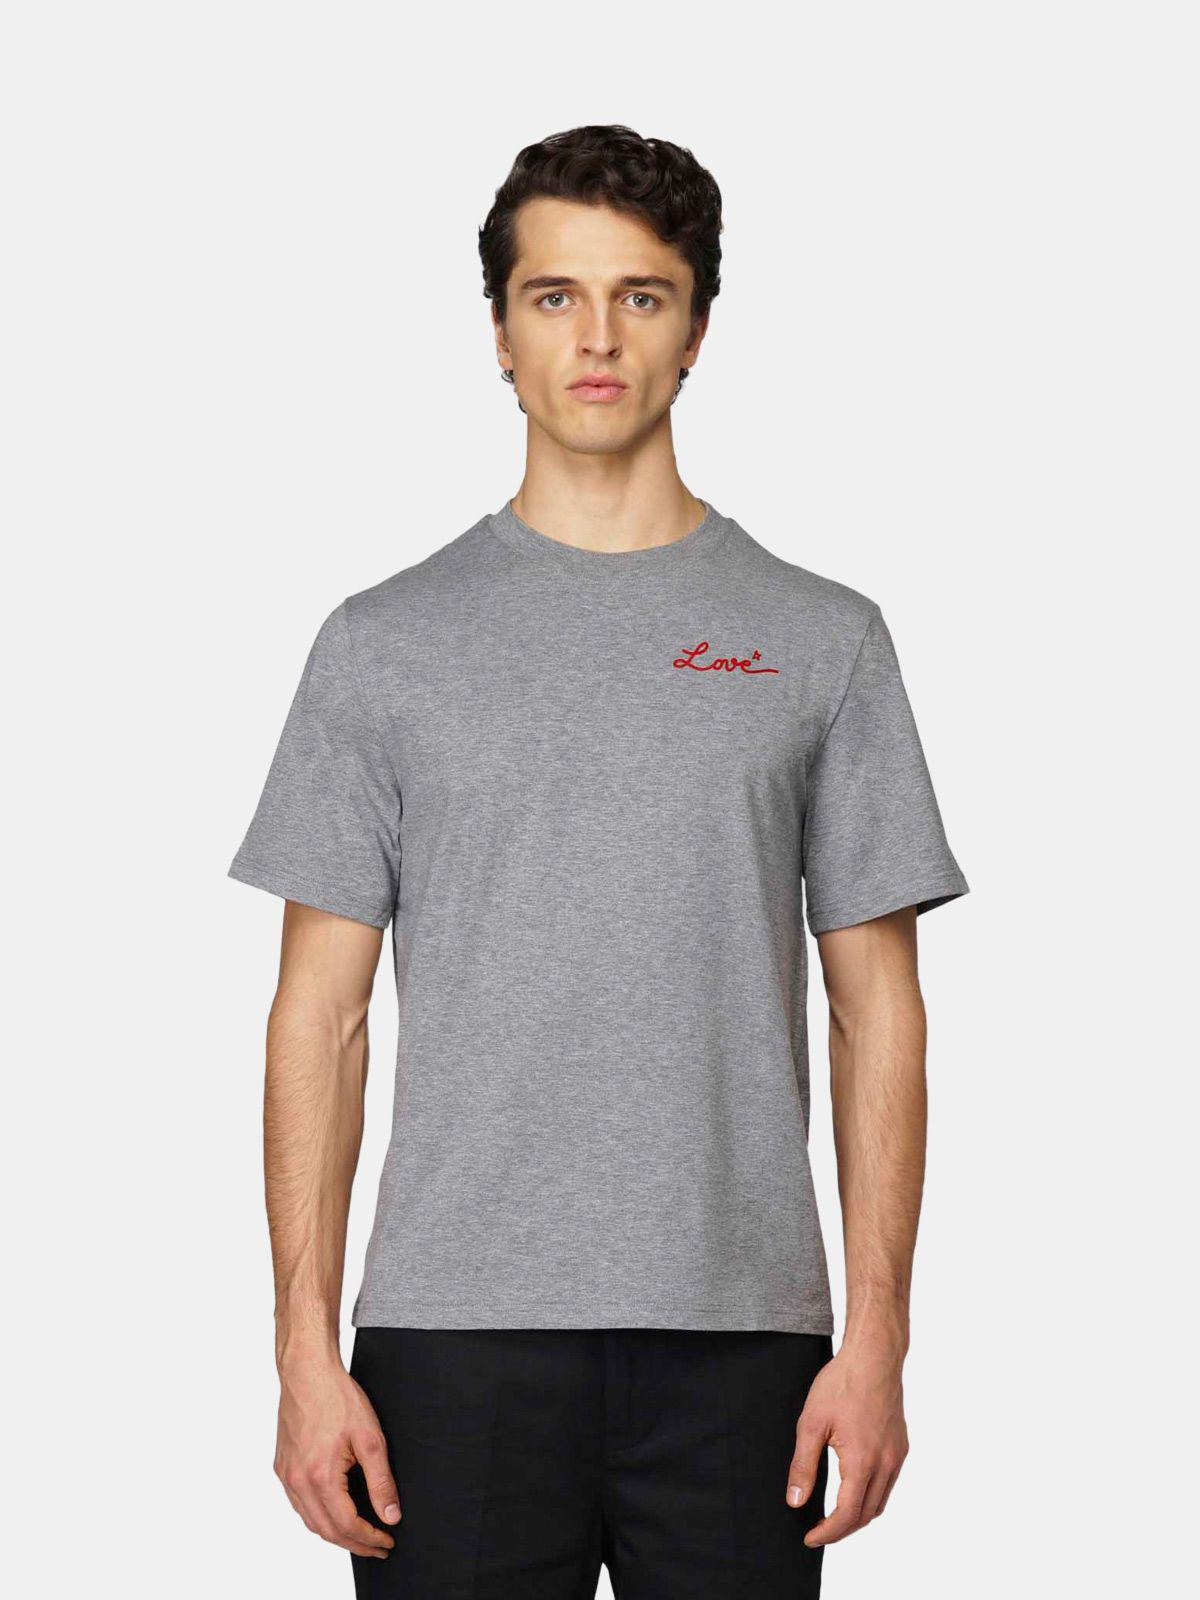 Grey Golden T-shirt with Love embroidery 1